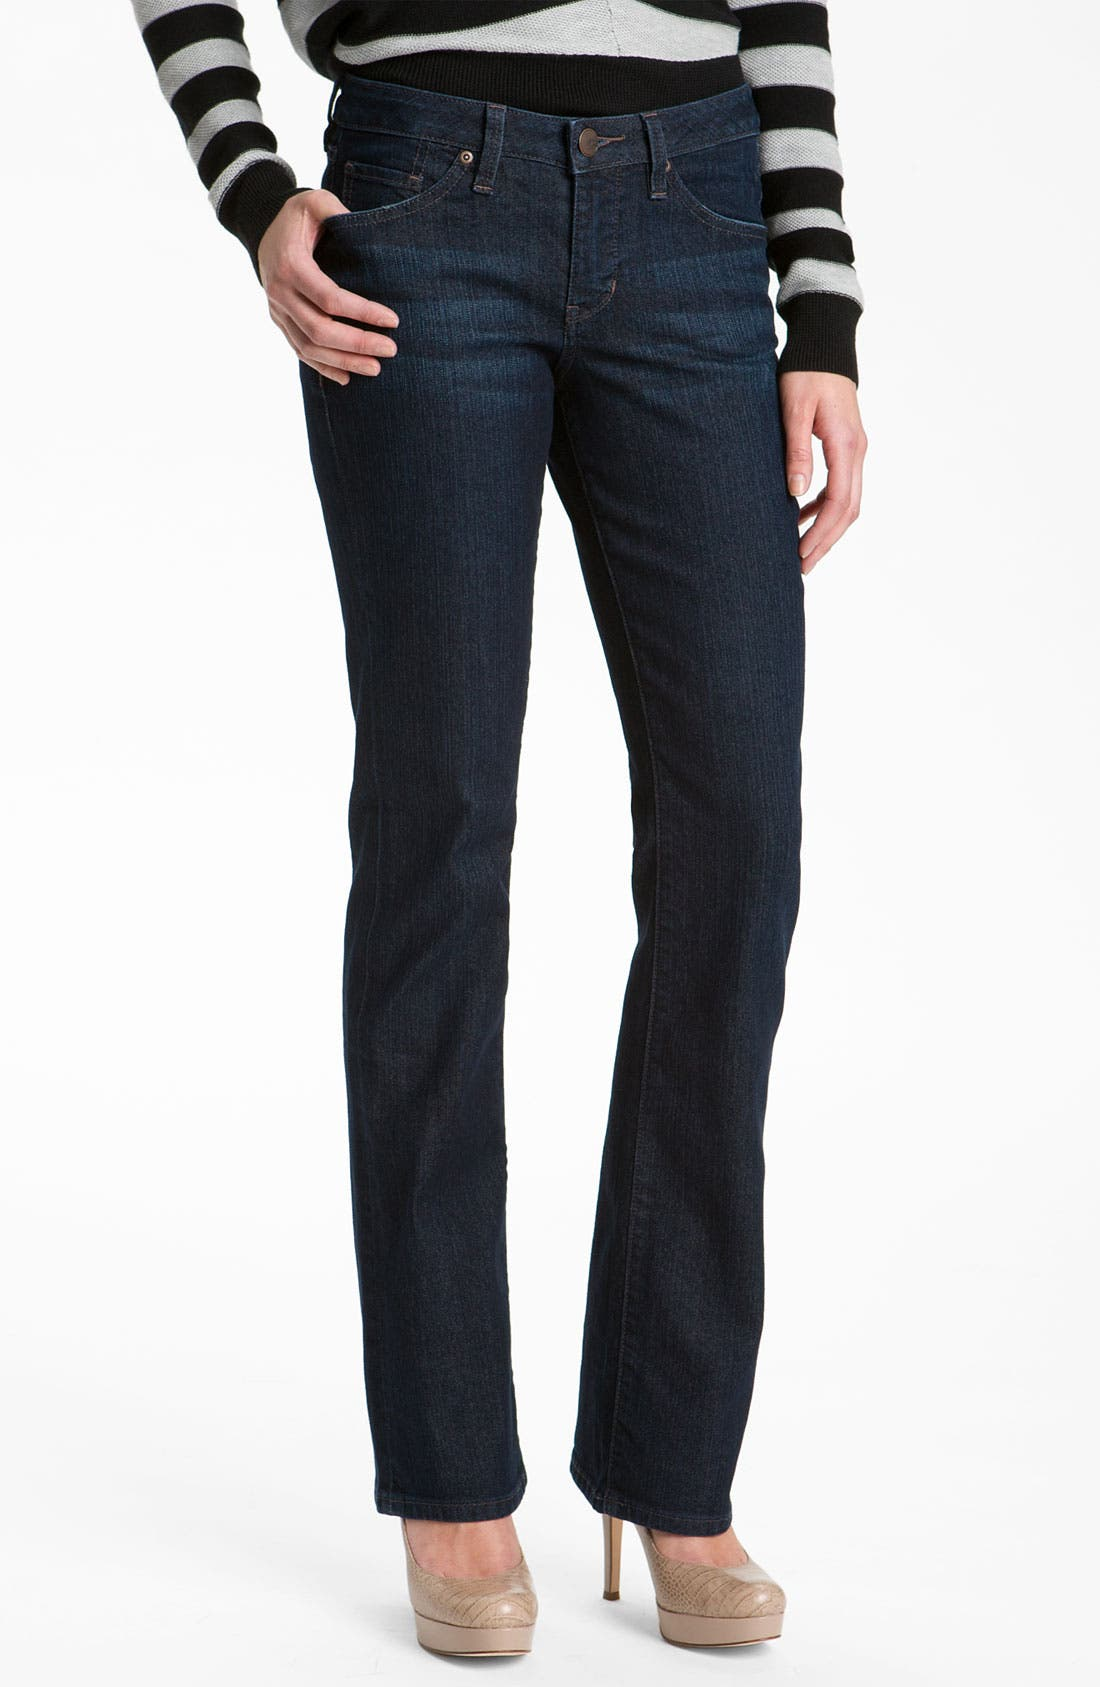 Alternate Image 1 Selected - Jag Jeans 'Lucy' Bootcut Jeans (Clean Dark)